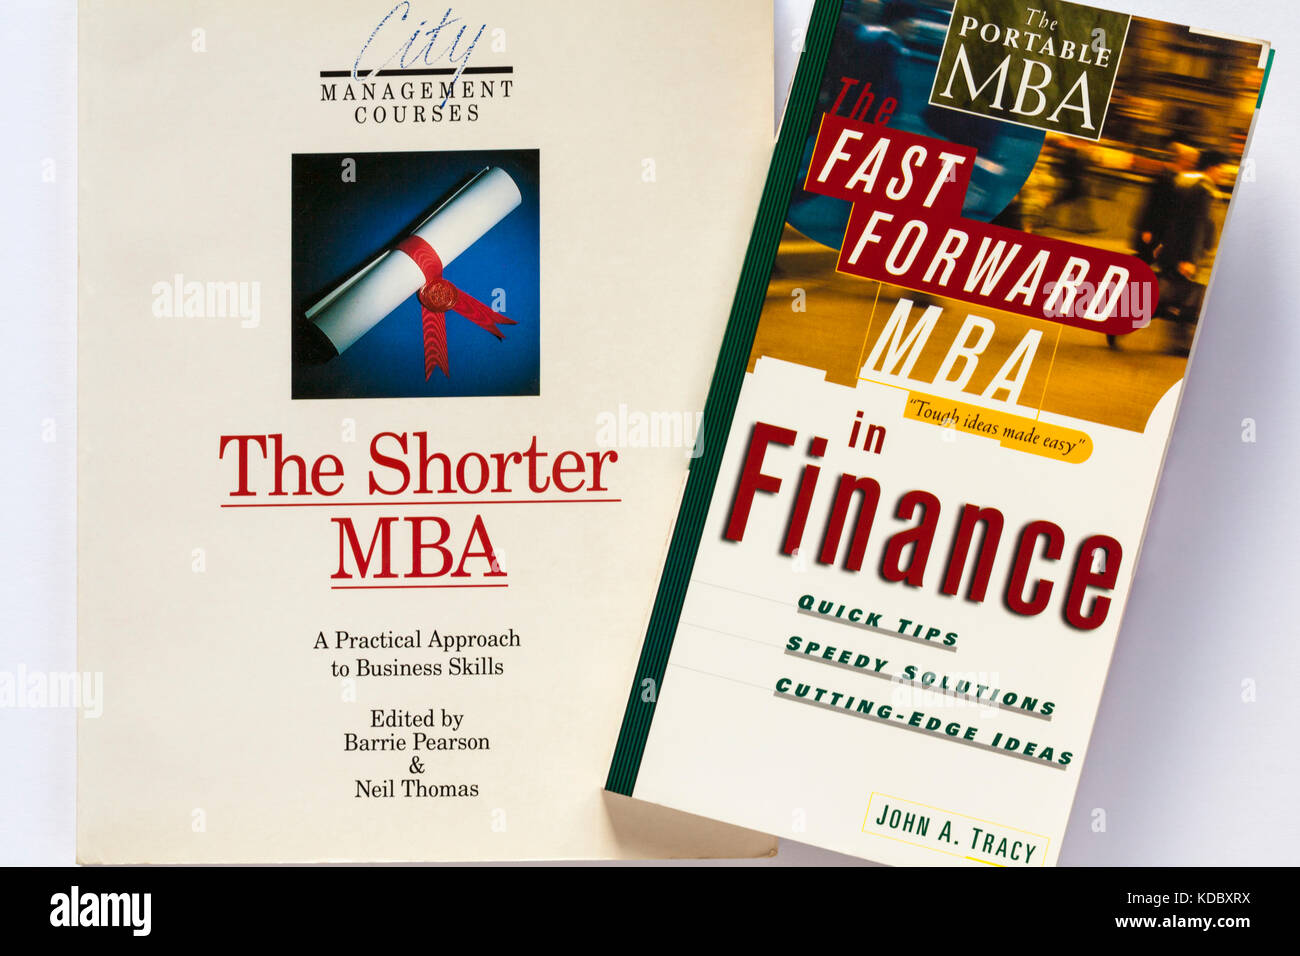 Image result for The Fast Forward MBA in Finance book